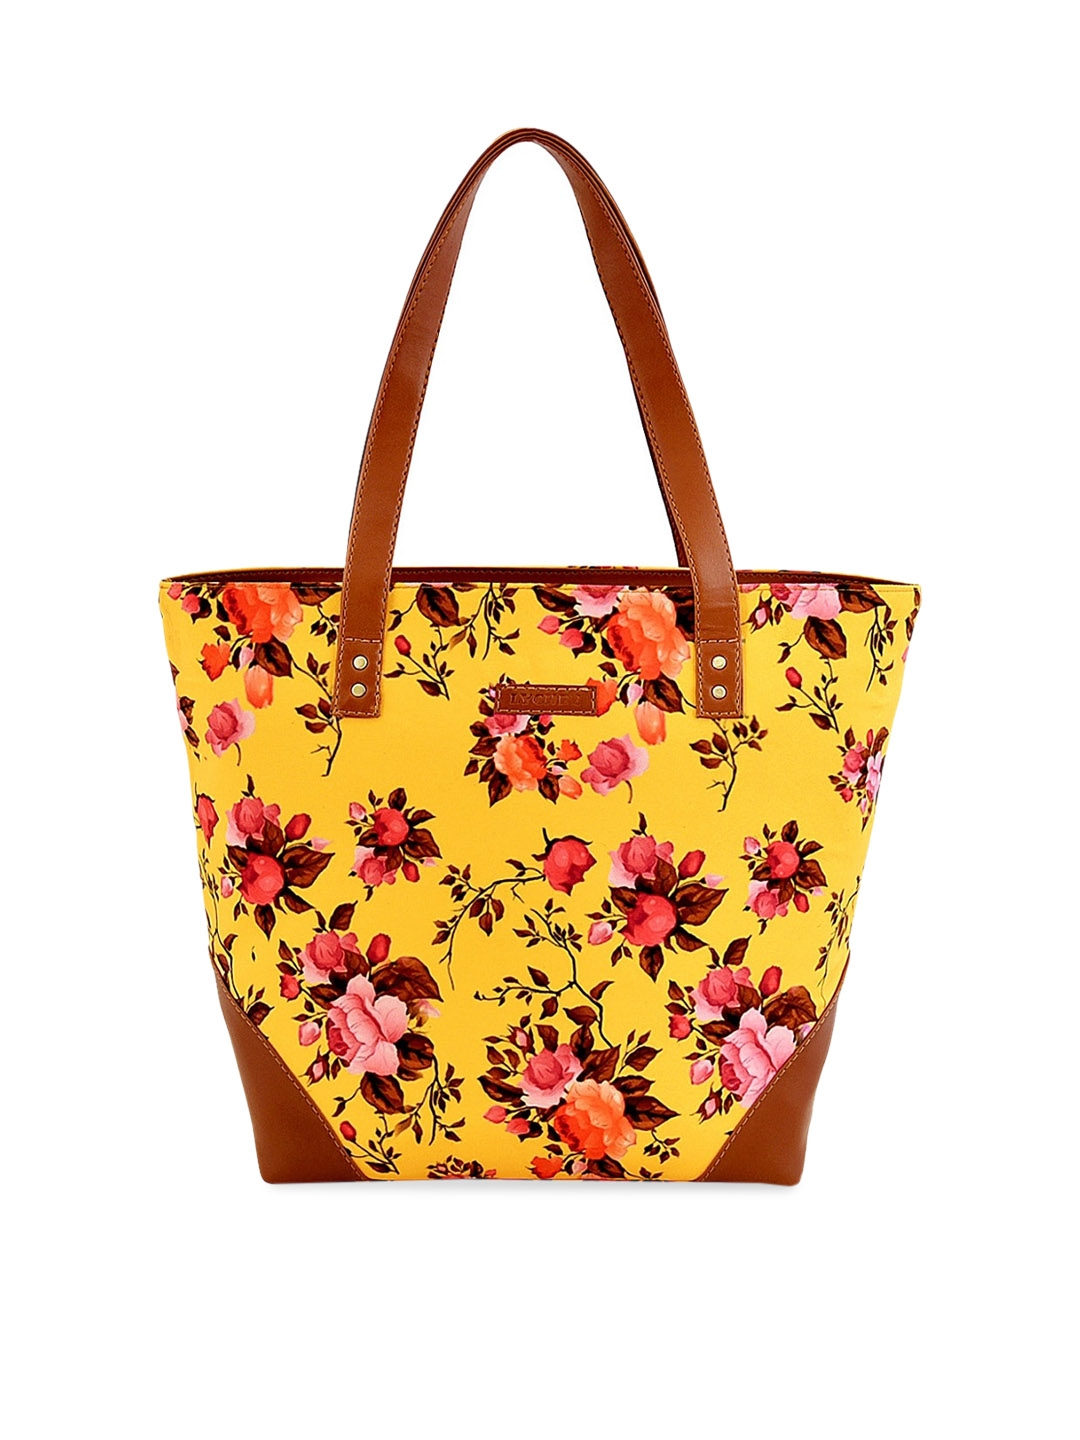 Lychee bags Yellow   Red Printed Tote Bag